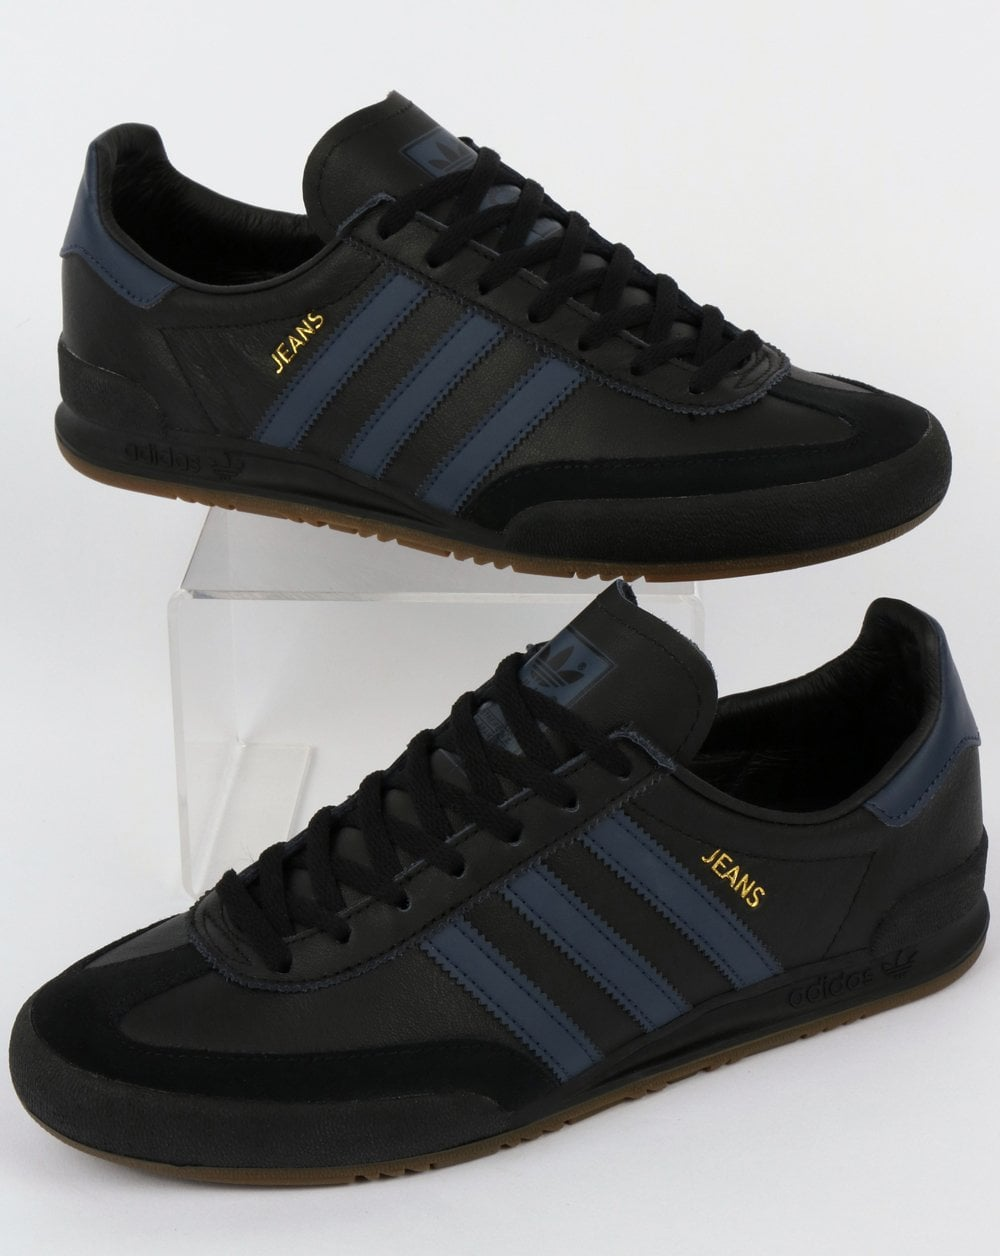 buy online 02dfa 22cae adidas Trainers Adidas Jeans Leather Trainers Black leather